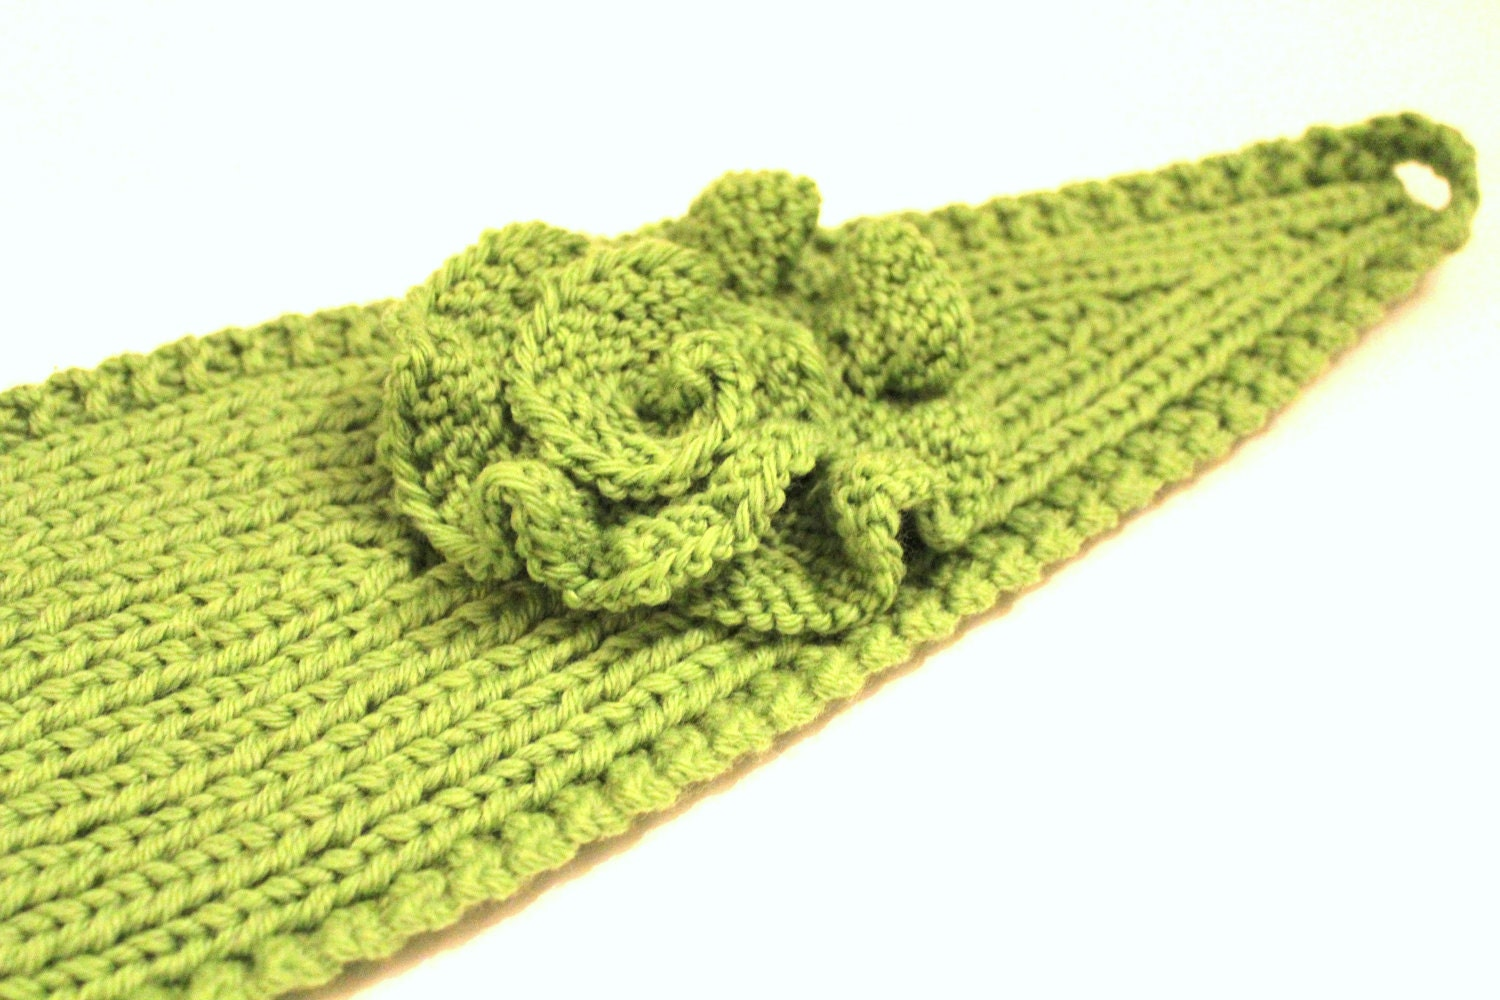 Knitted Headband Patterns With Flower : KNITTING PATTERN Knitting Pattern Headband with Crochet Or